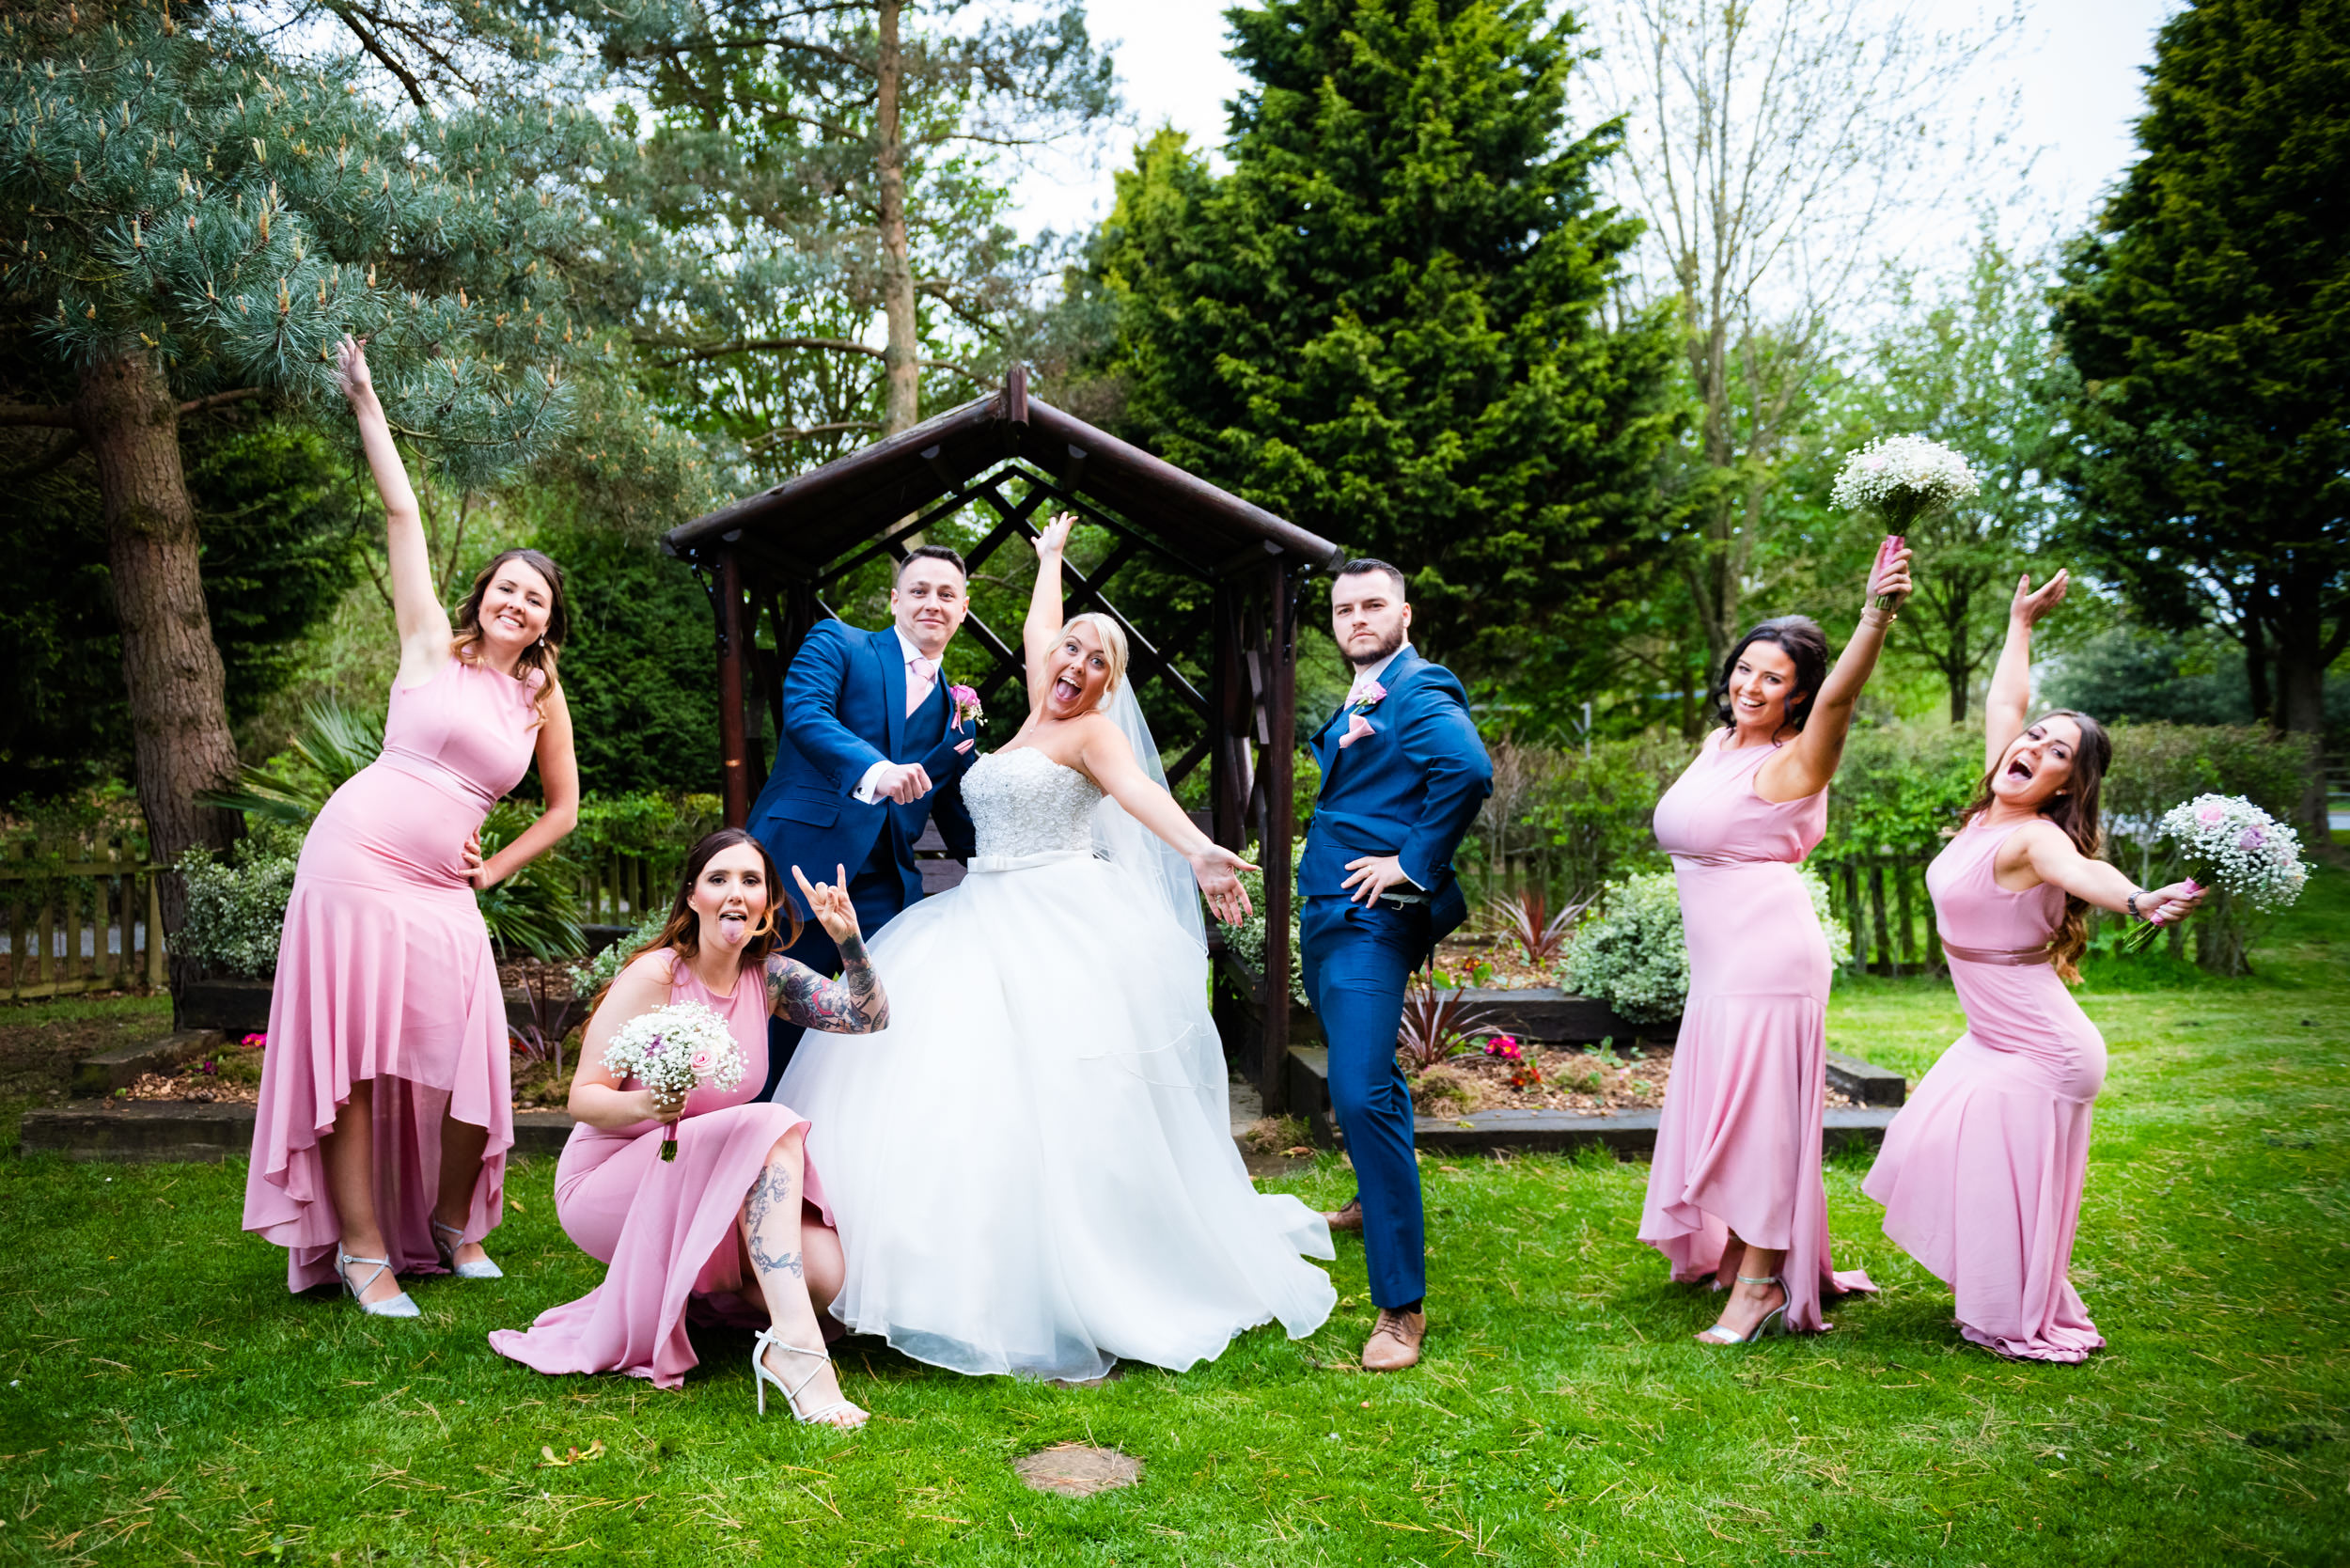 The bridal party doing silly poses for a fun group portrait